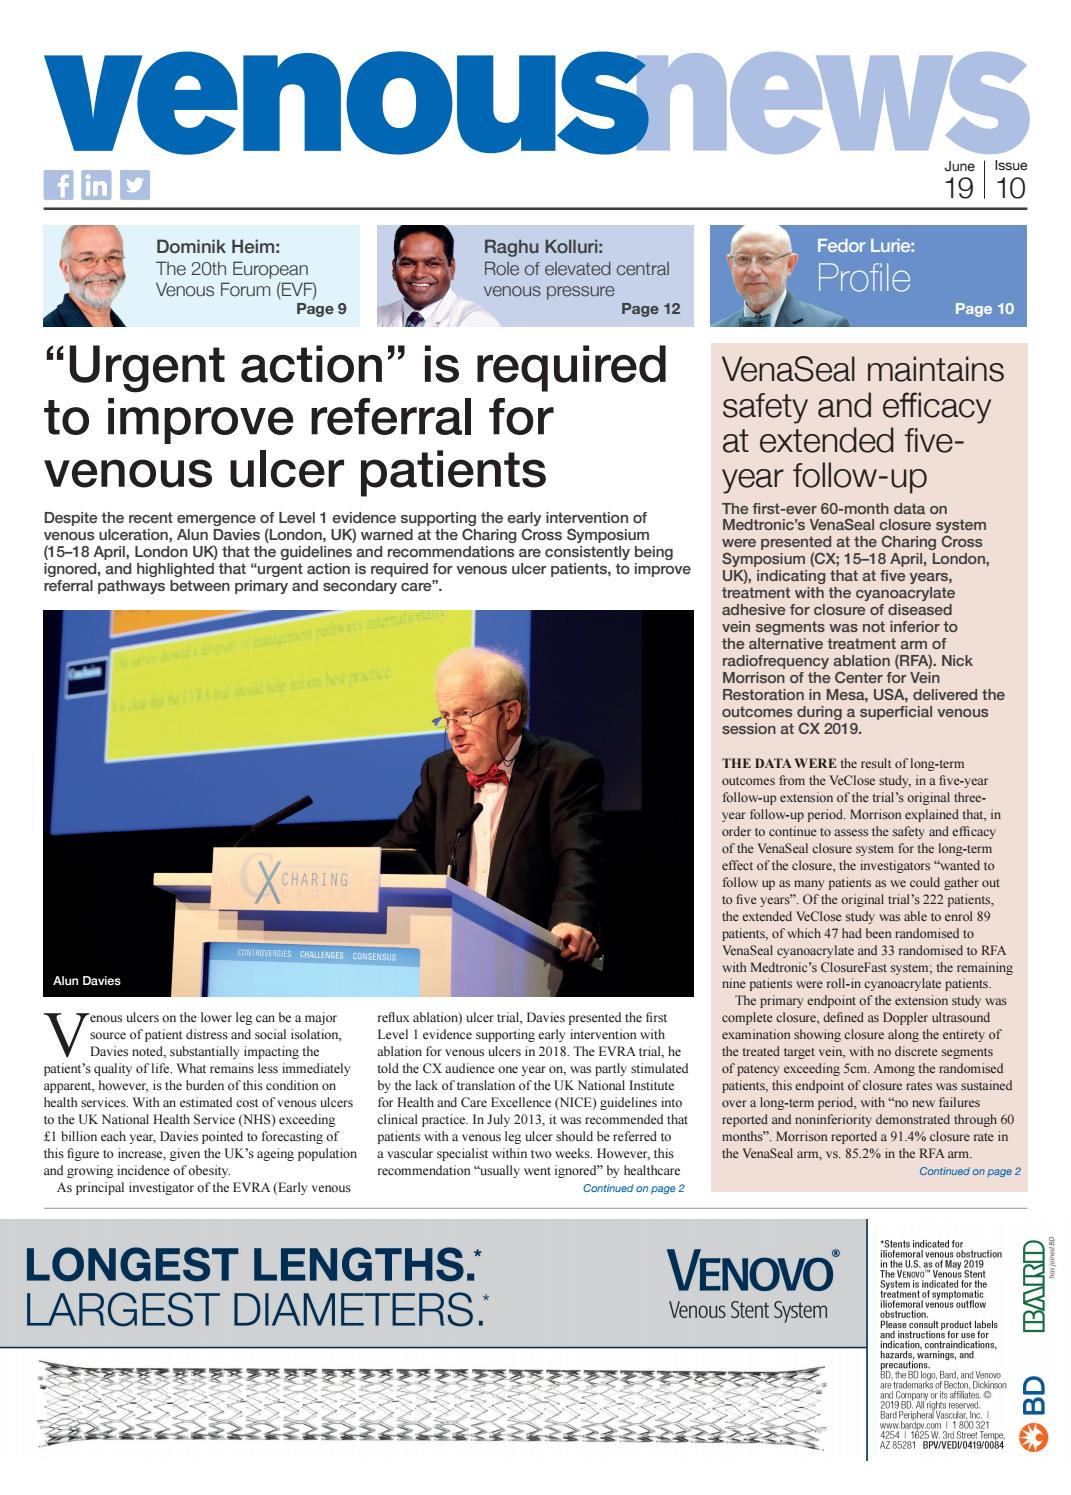 Michigan Ignored Conclusive Evidence Of >> Venous News Issue 10 June 2019 By Biba Publishing Issuu